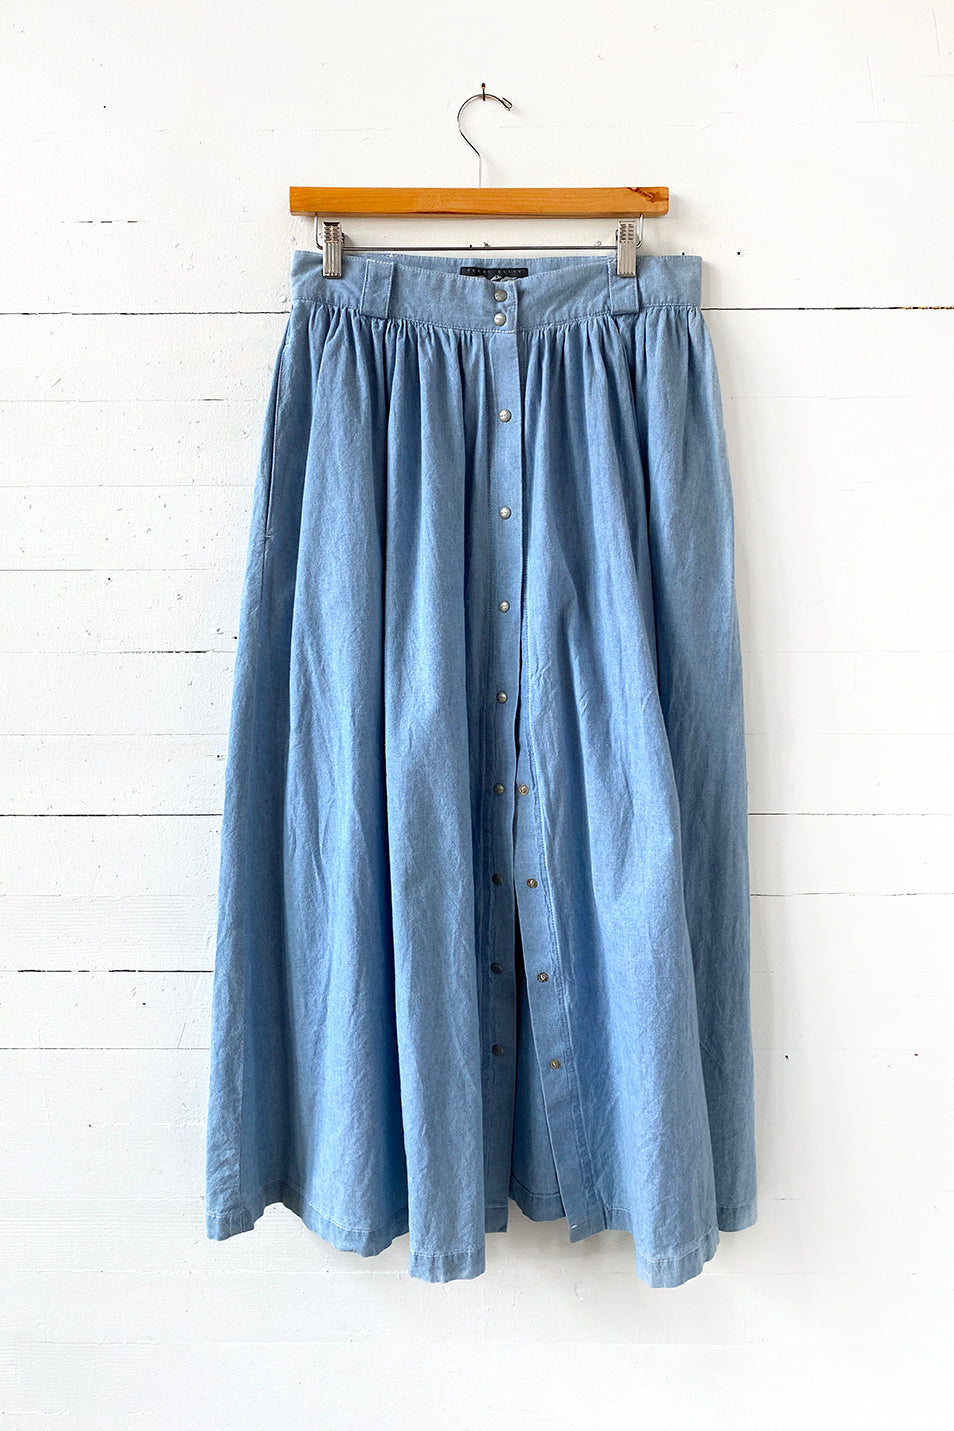 Perry Ellis chambray midi skirt